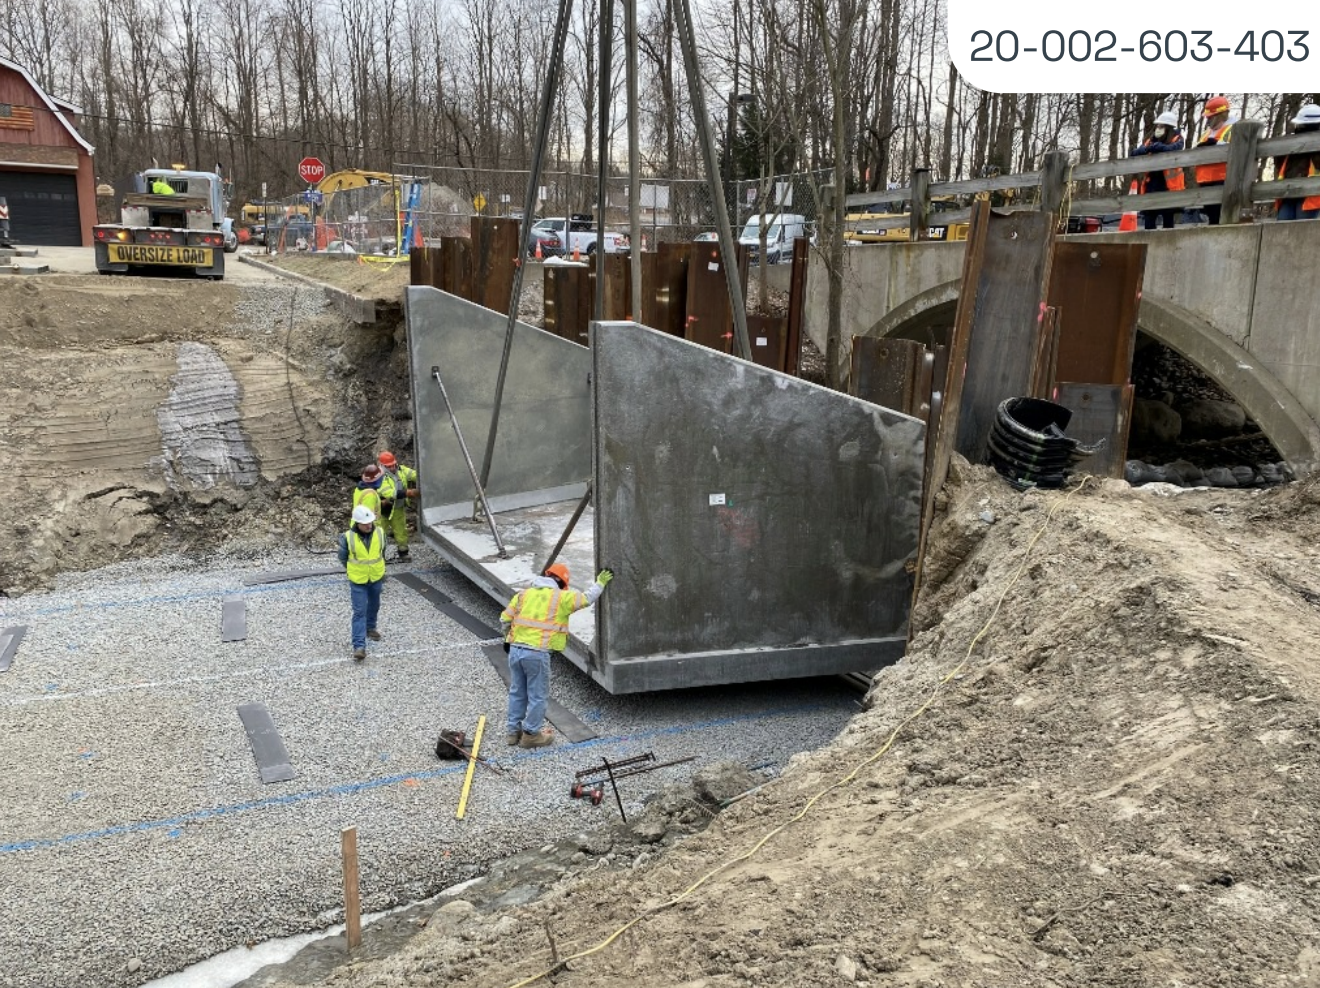 Back in August 2020, in the middle of a global pandemic, Riskcast welcomed Transit Construction Corp. to our family of clients! They have deployed the Riskcast platform as they work to replace 2 precast concrete culverts for the Town of Yorktown in the State of New York.